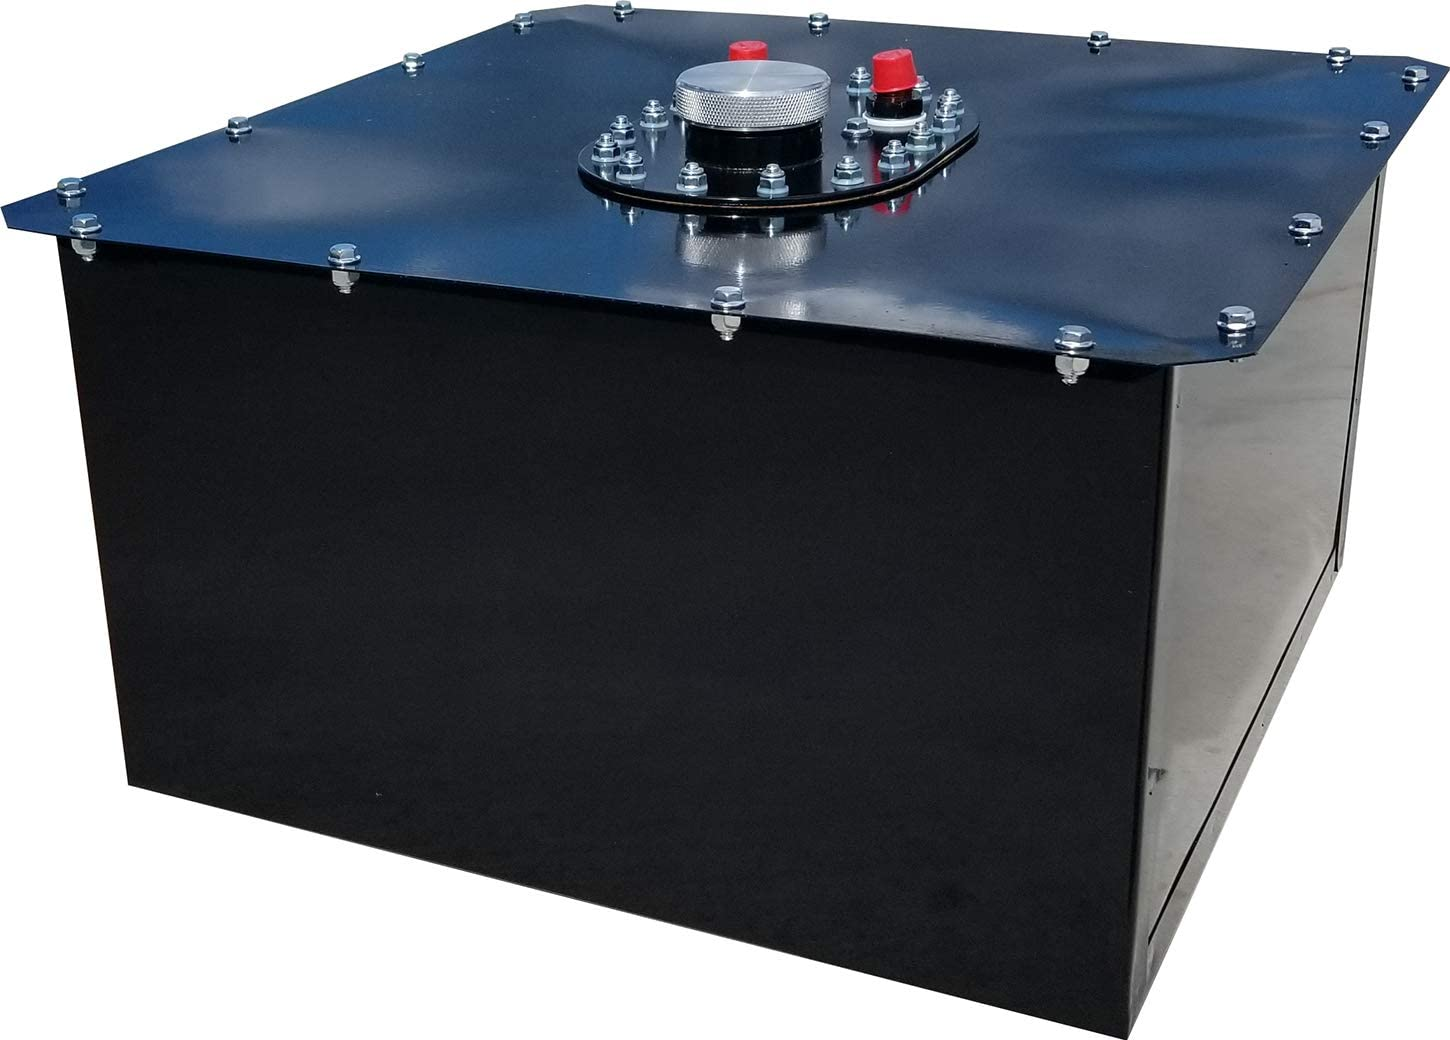 25 x 19 x 11 in Tall 10 AN Male Outlet Black Fuel Cell and Can Each Steel//Plastic Circle Track 16 gal 8 AN Male Vent